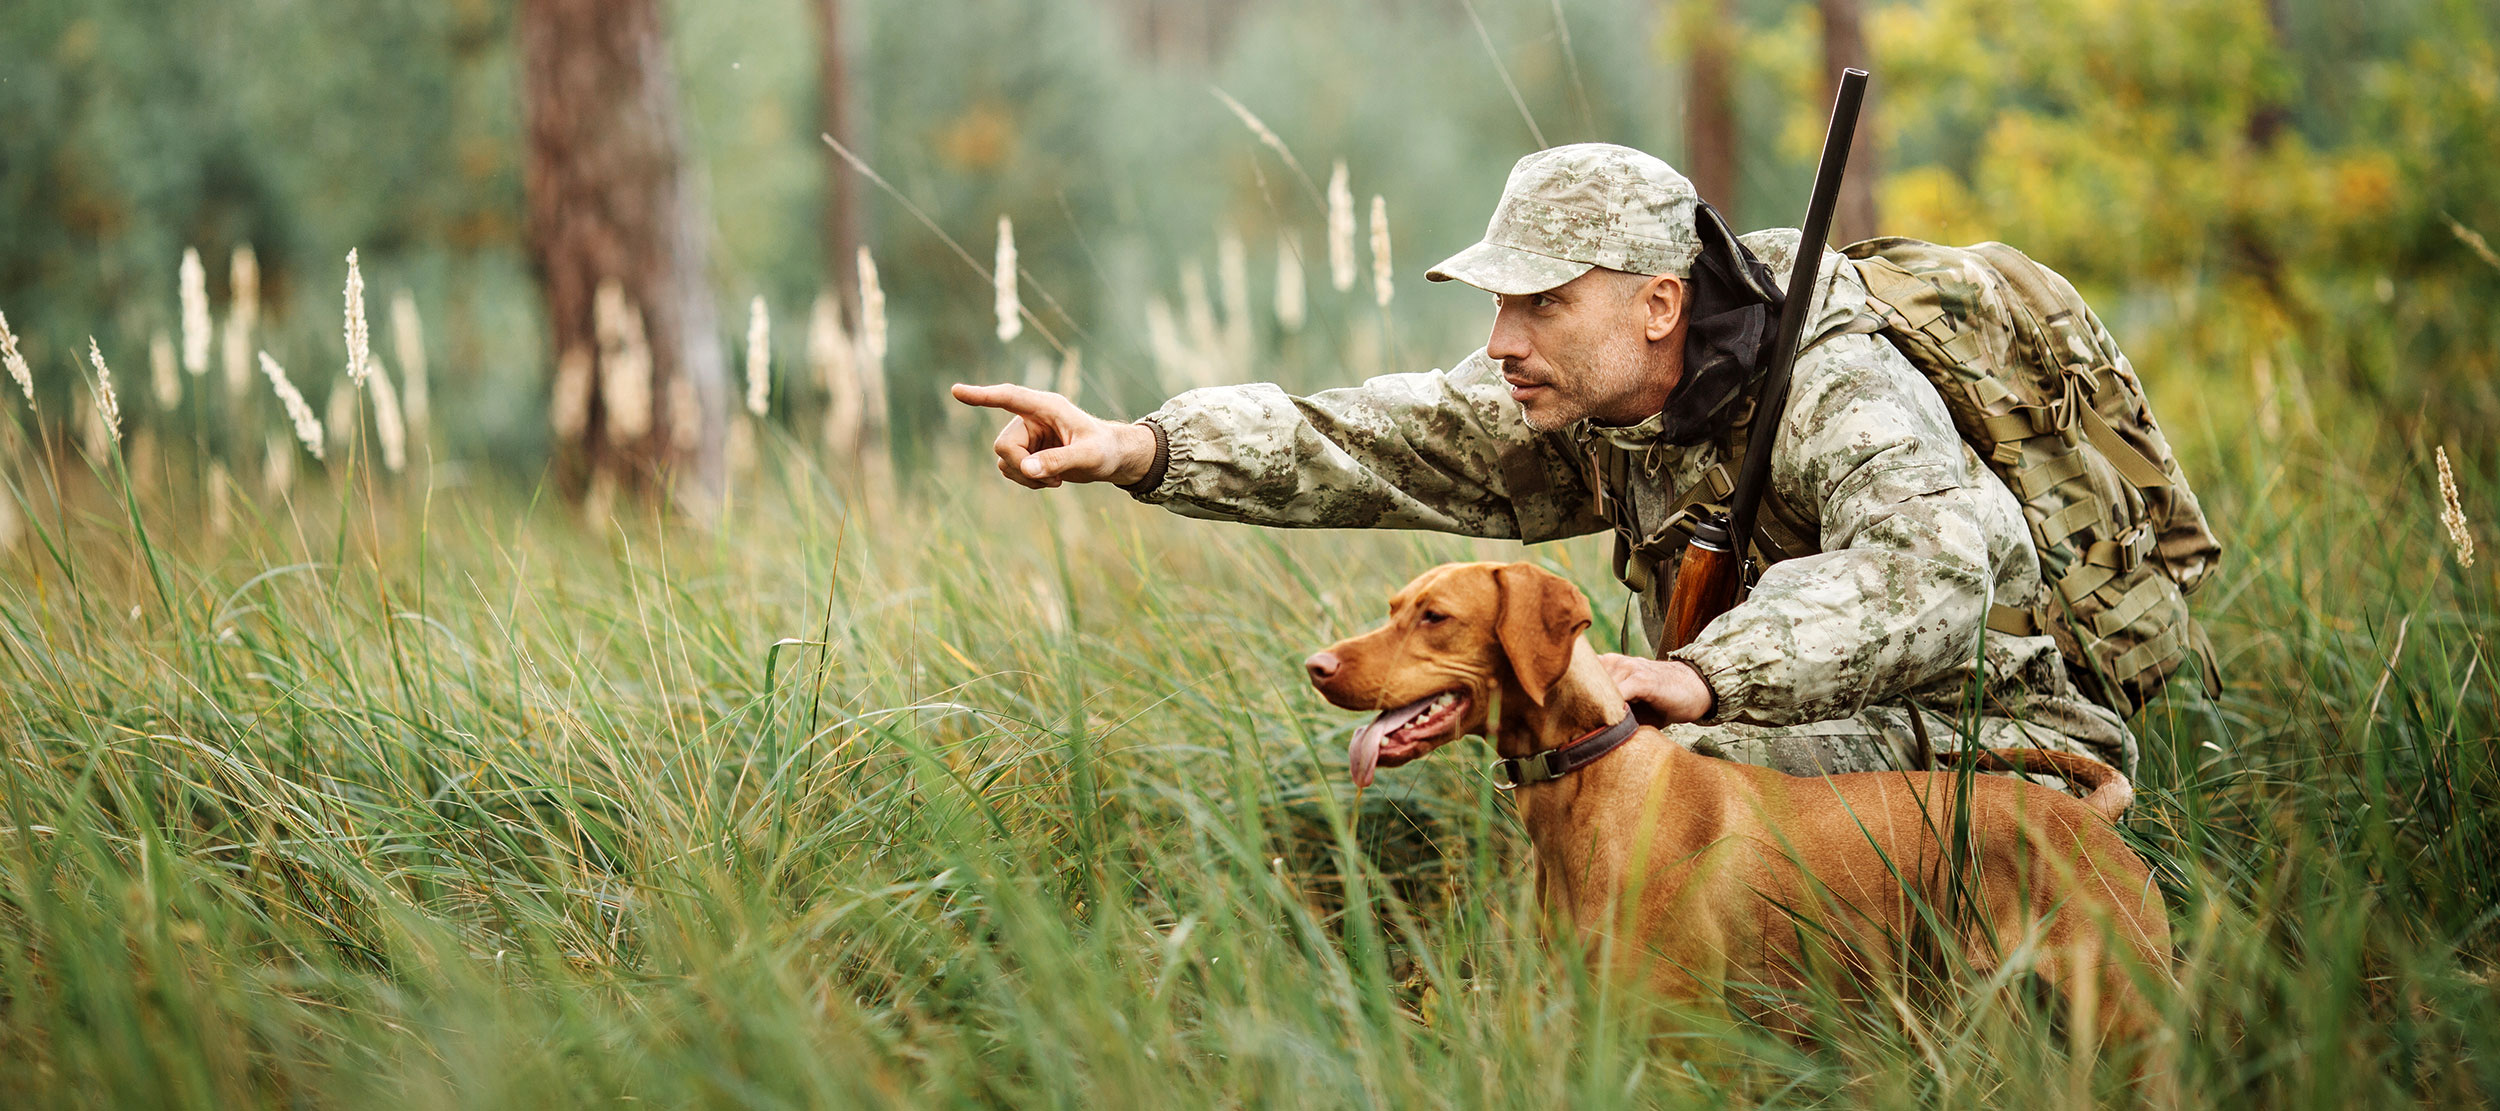 How to Find The Best Shotgun to Fit Your Needs